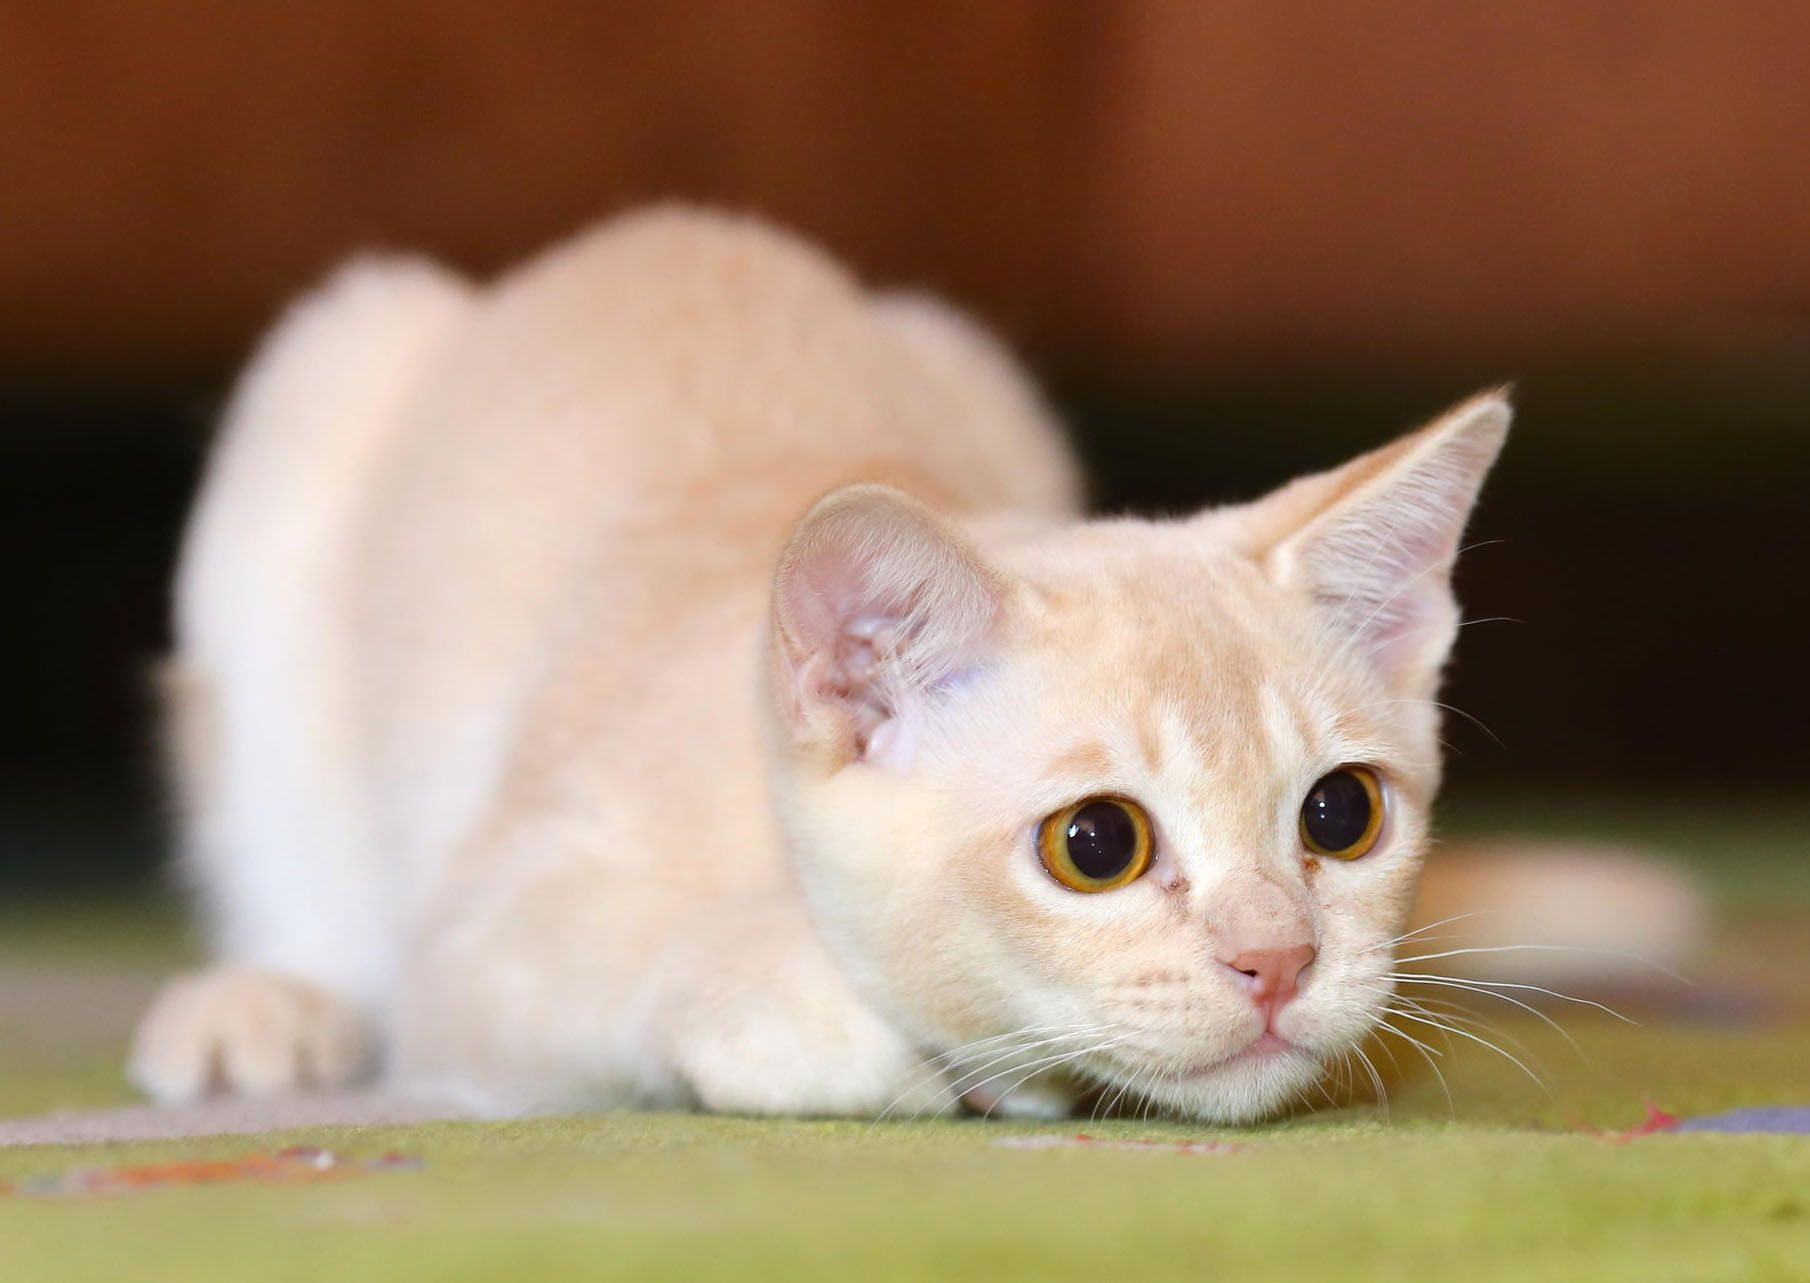 Hd wallpaper cat - Animal Cat Hd Wallpapers And Latest Pictures Photos Gallery